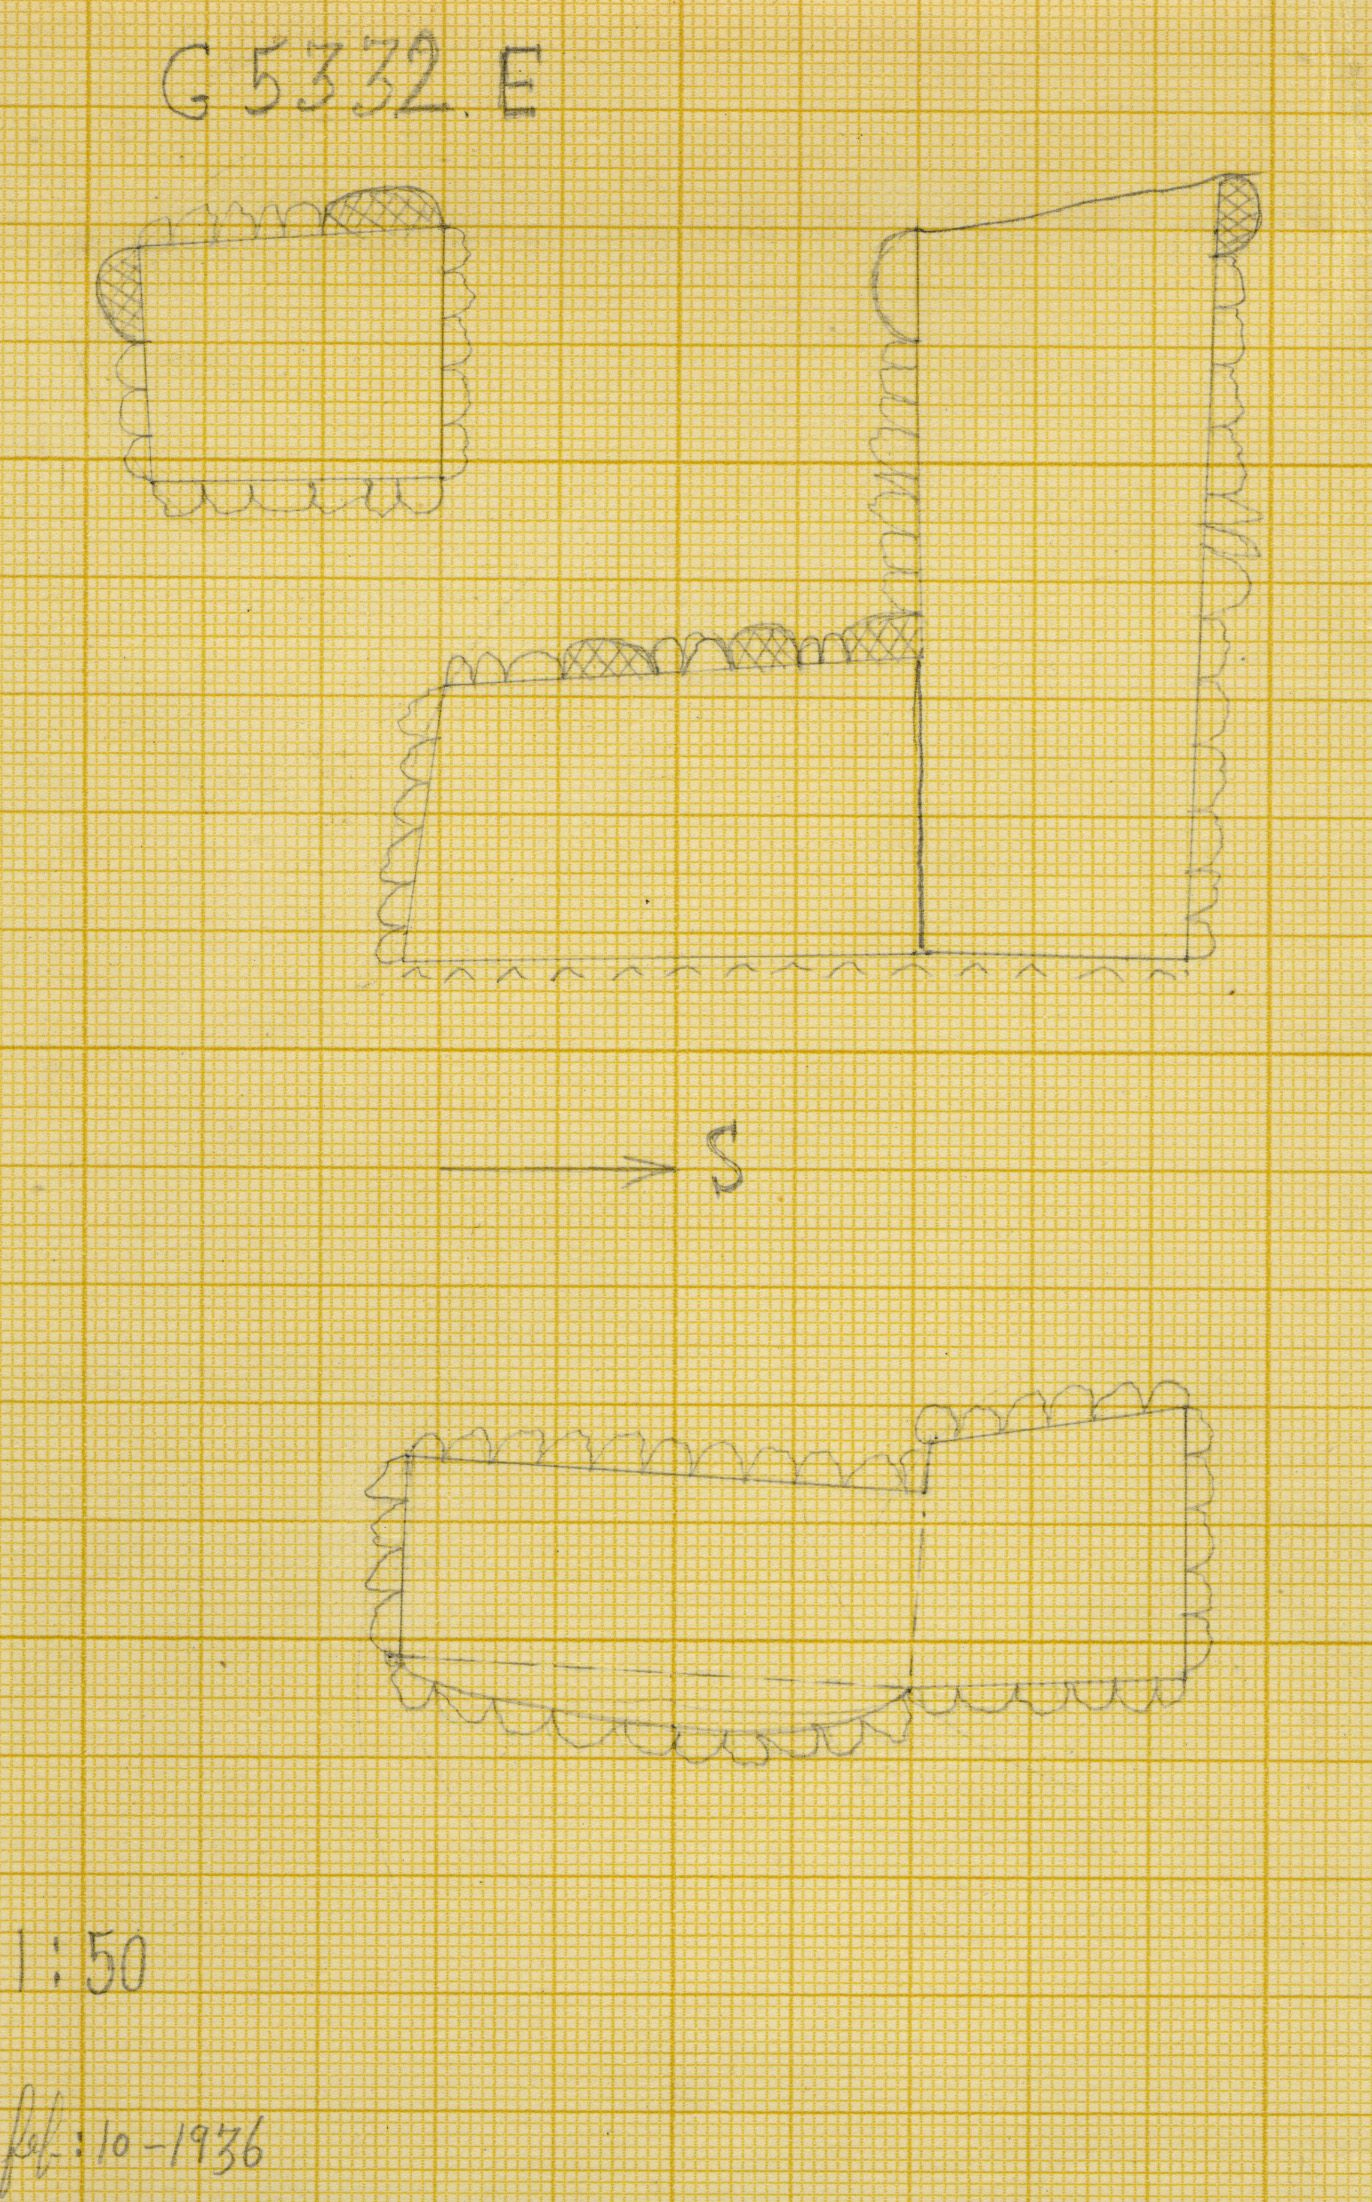 Maps and plans: G 5332, Shaft E (S 798)